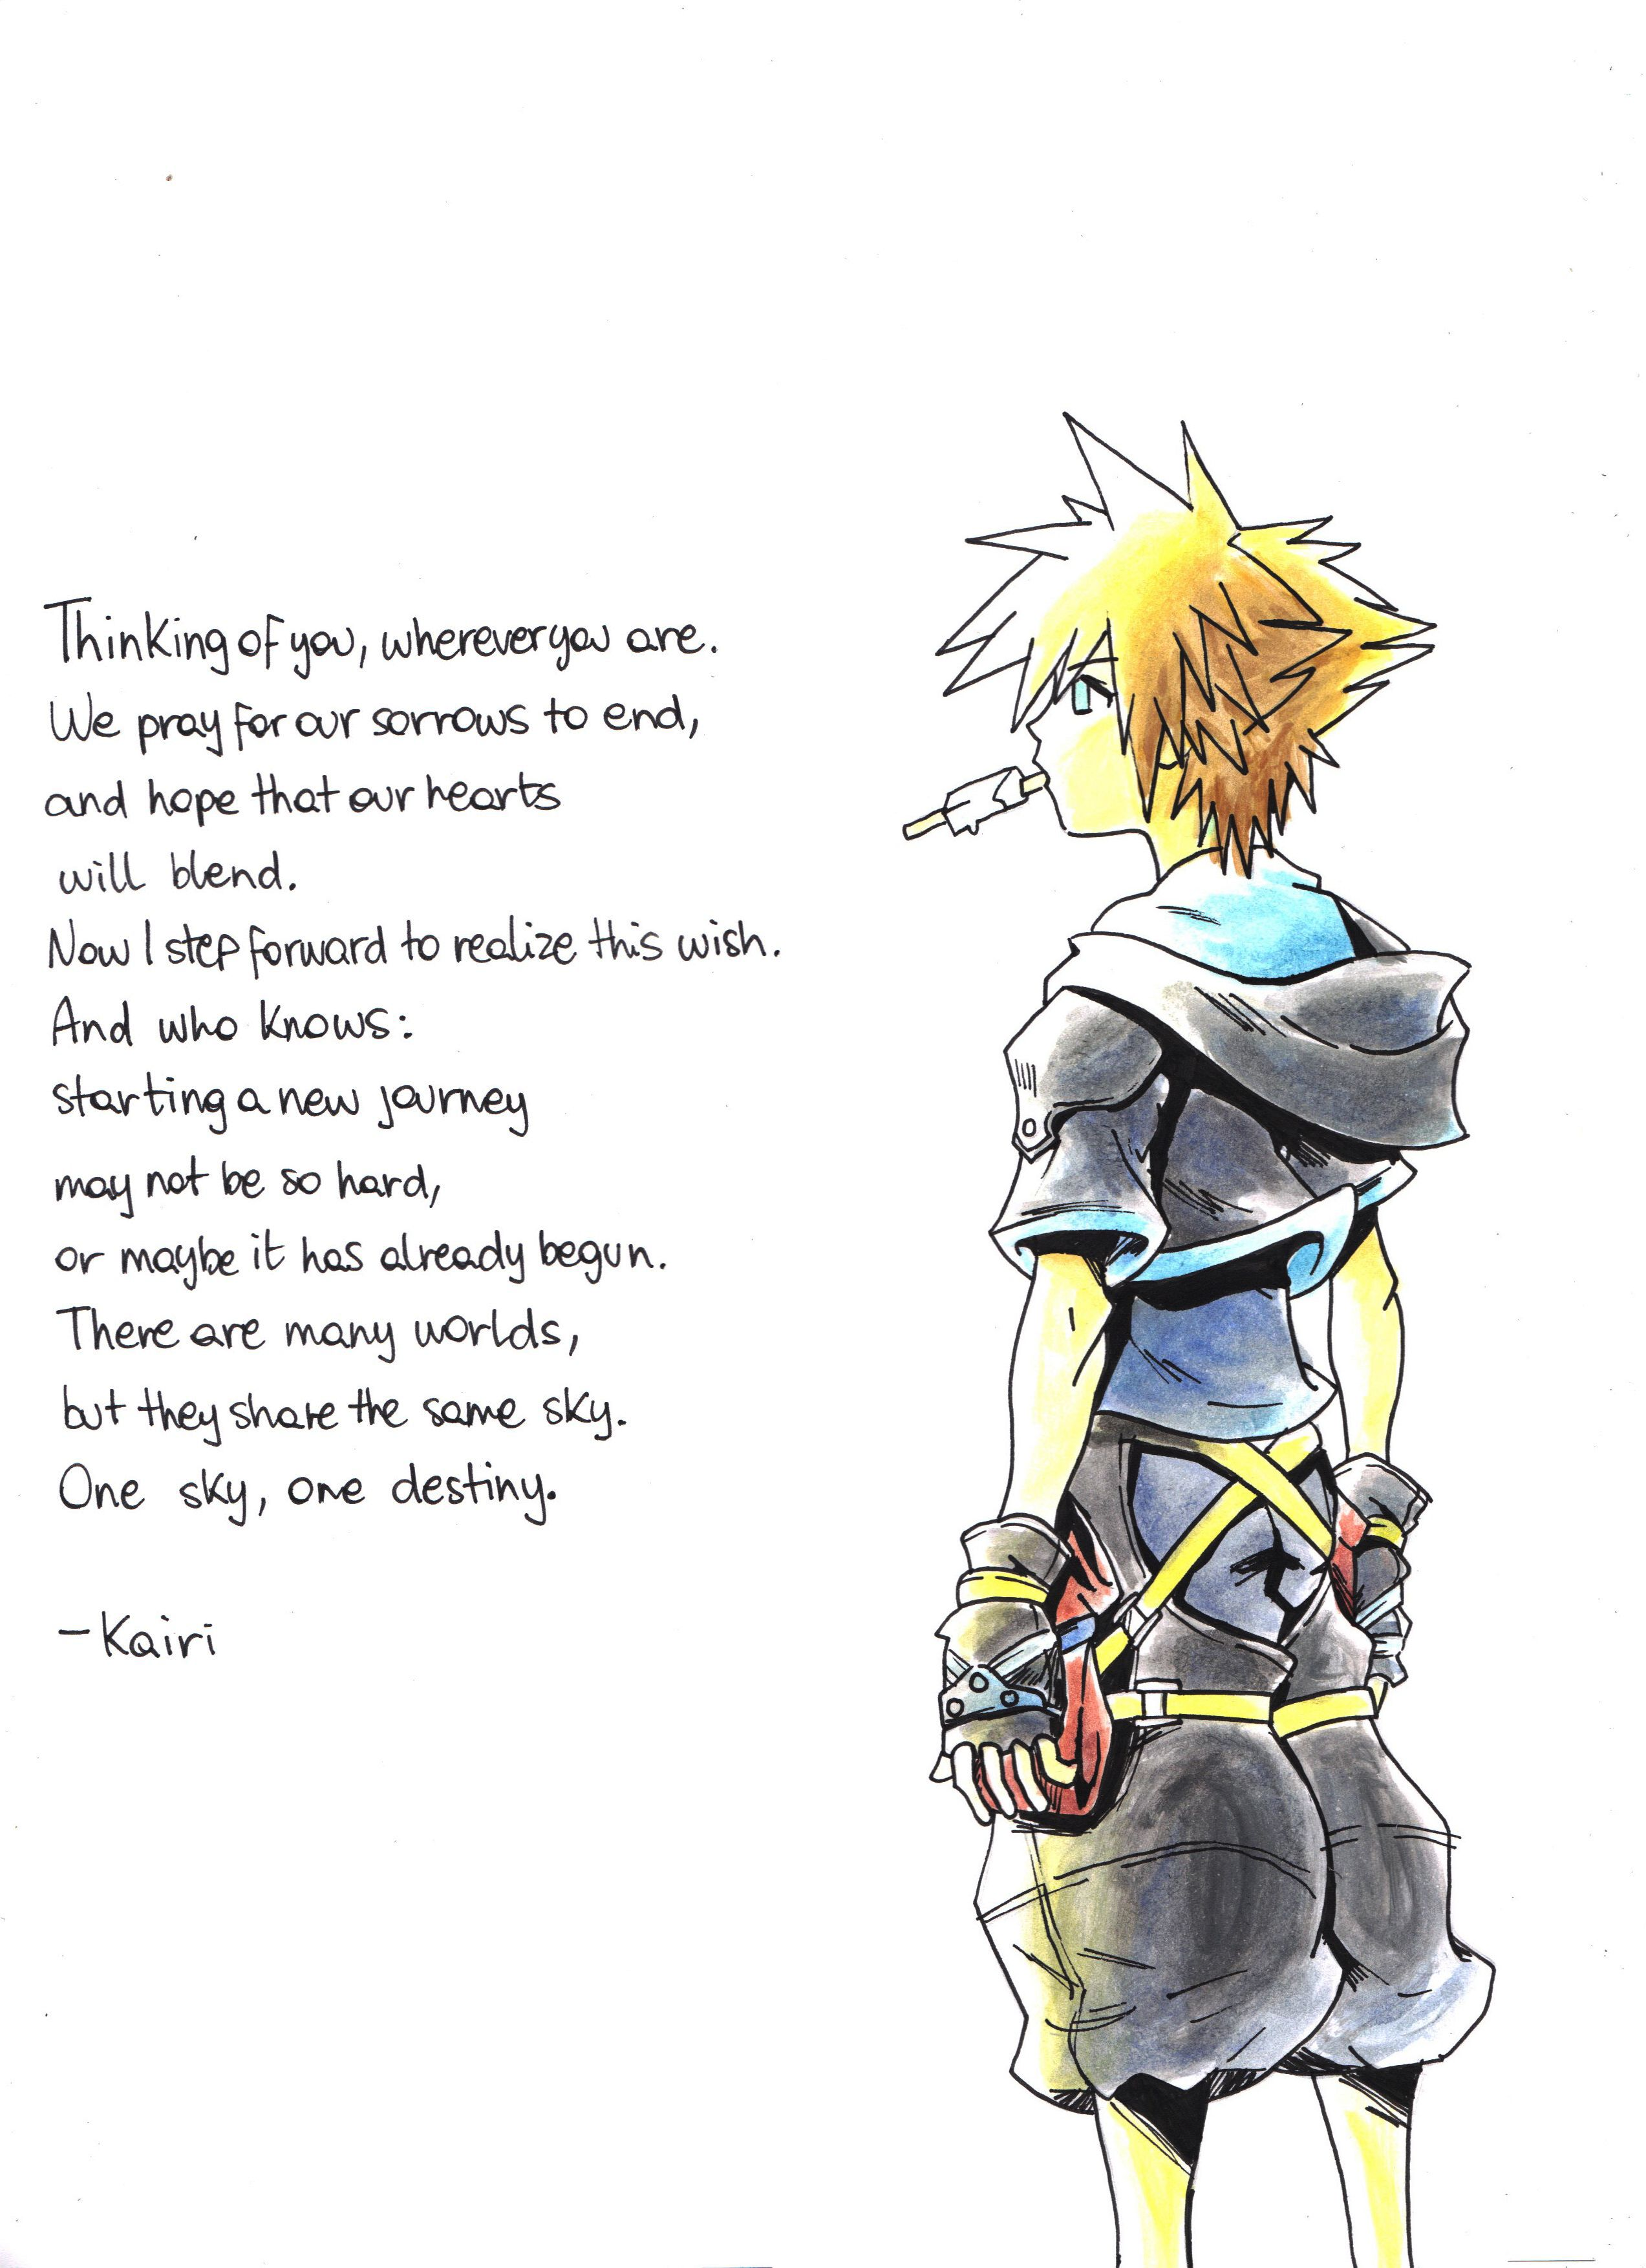 Kingdom Hearts Quotes In Kingdom Hearts II, Sora and Riku are stranded in the Dark  Kingdom Hearts Quotes